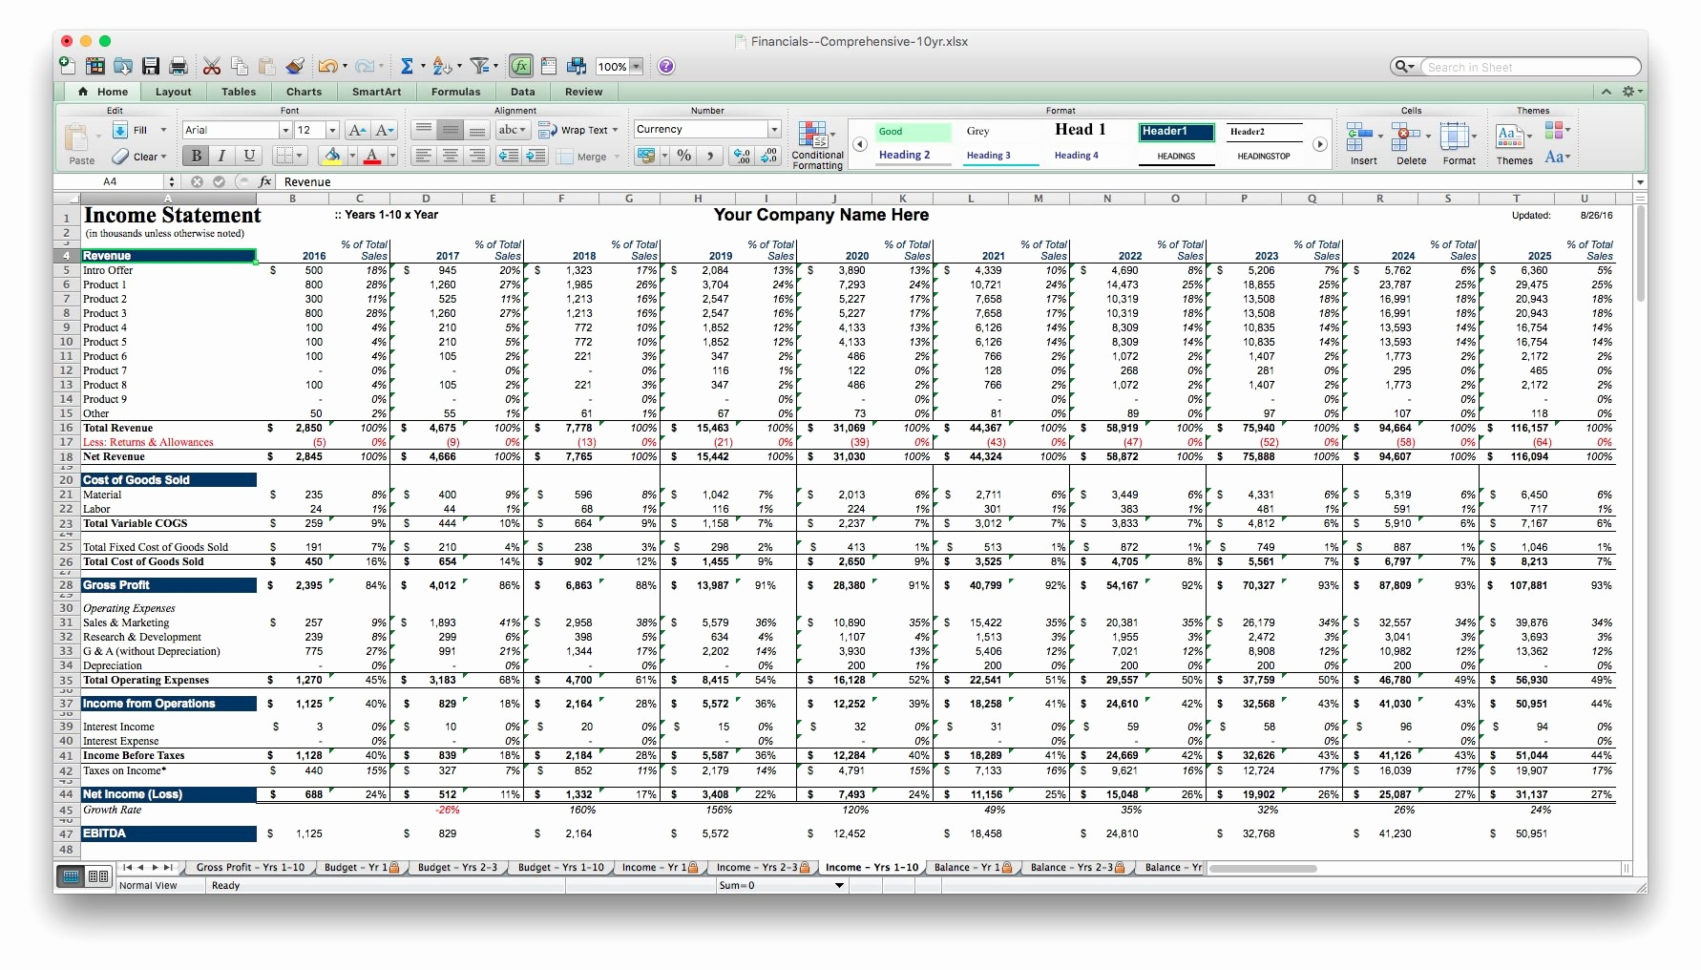 Financial Planning Spreadsheet For Startups On Spreadsheet For Mac For Financial Planning Excel Sheet